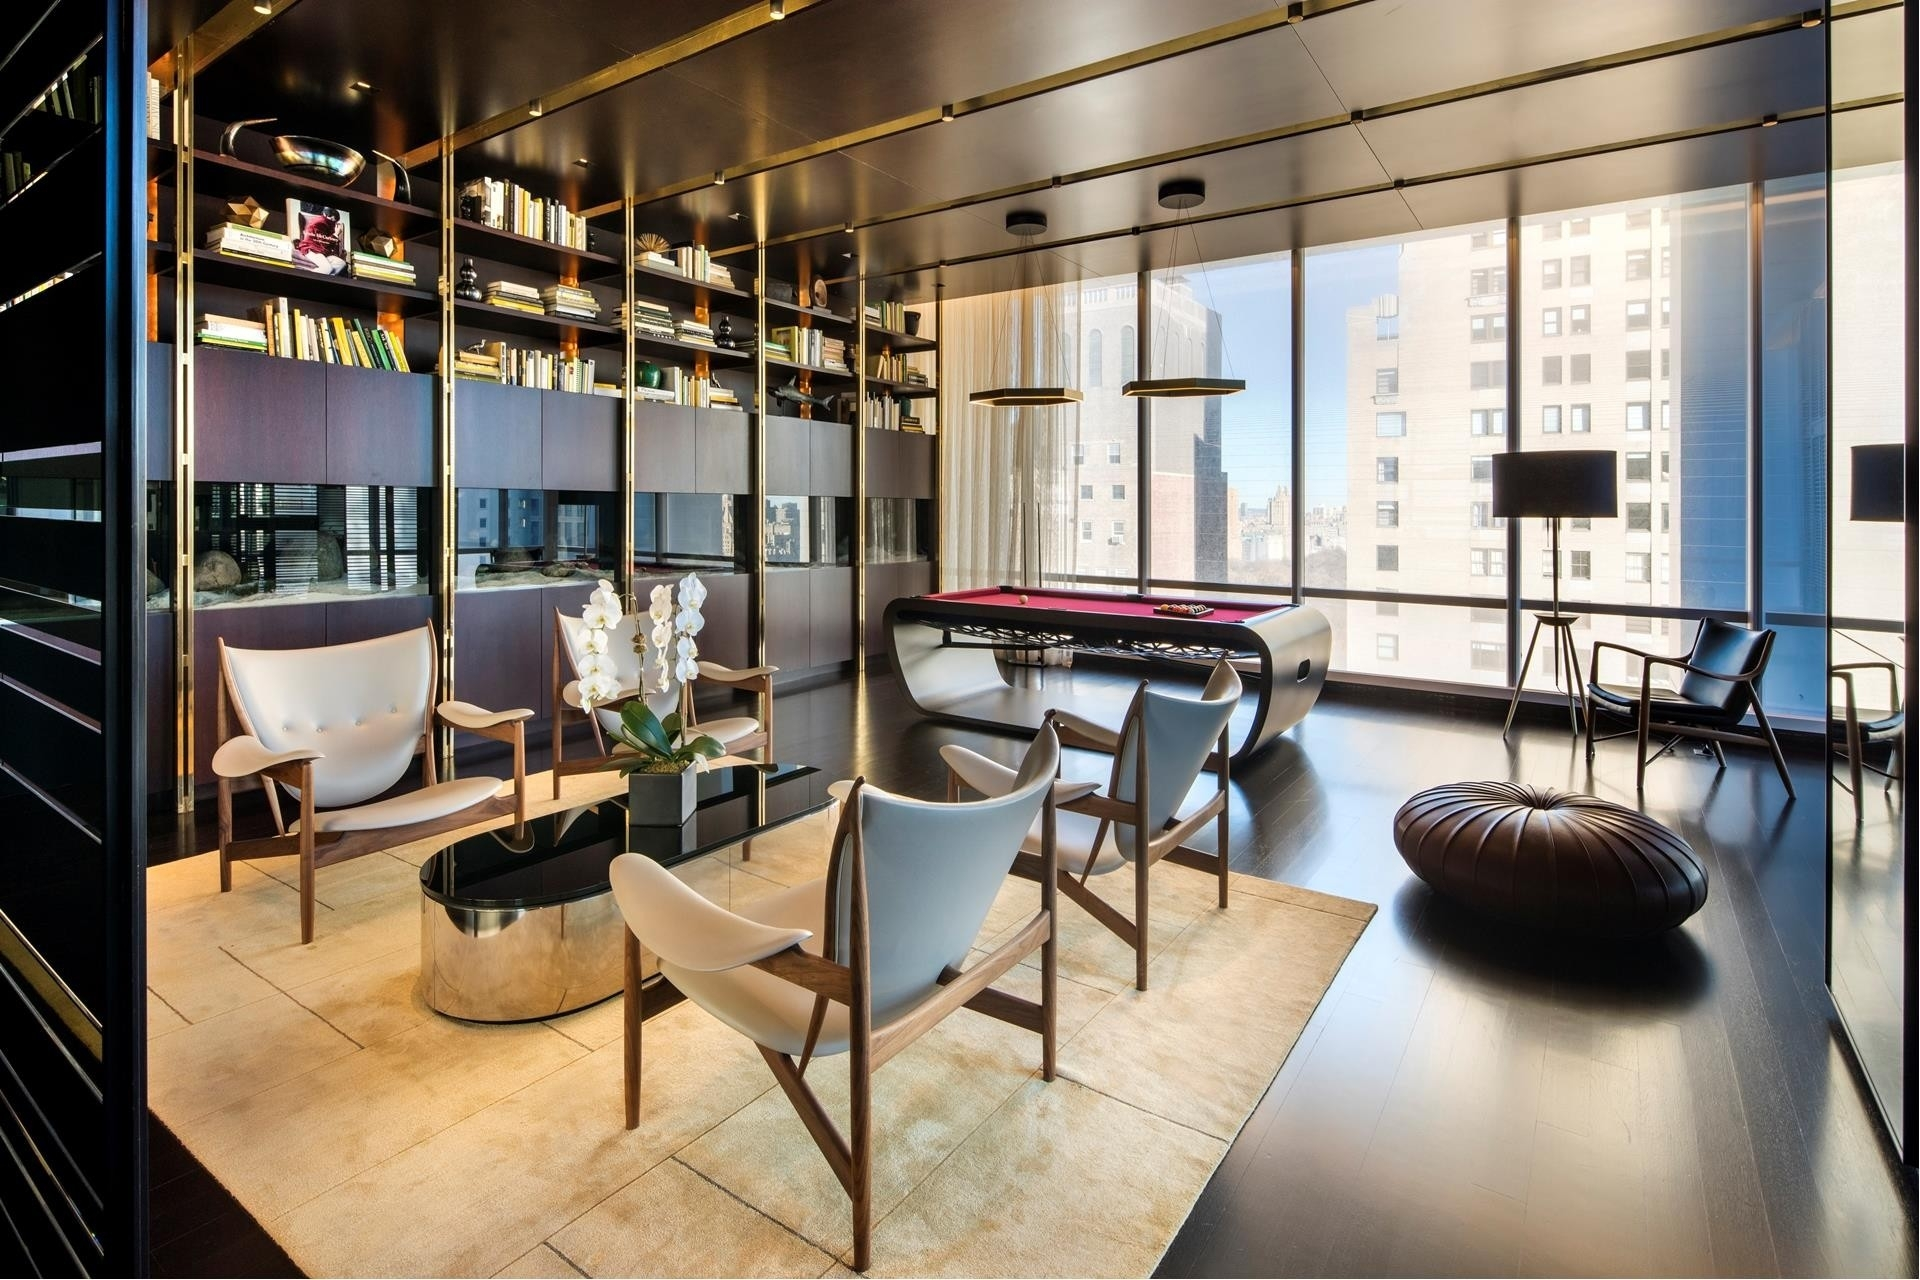 30. Condominiums for Sale at One57, 157 West 57th St, 87 Midtown West, New York, NY 10019